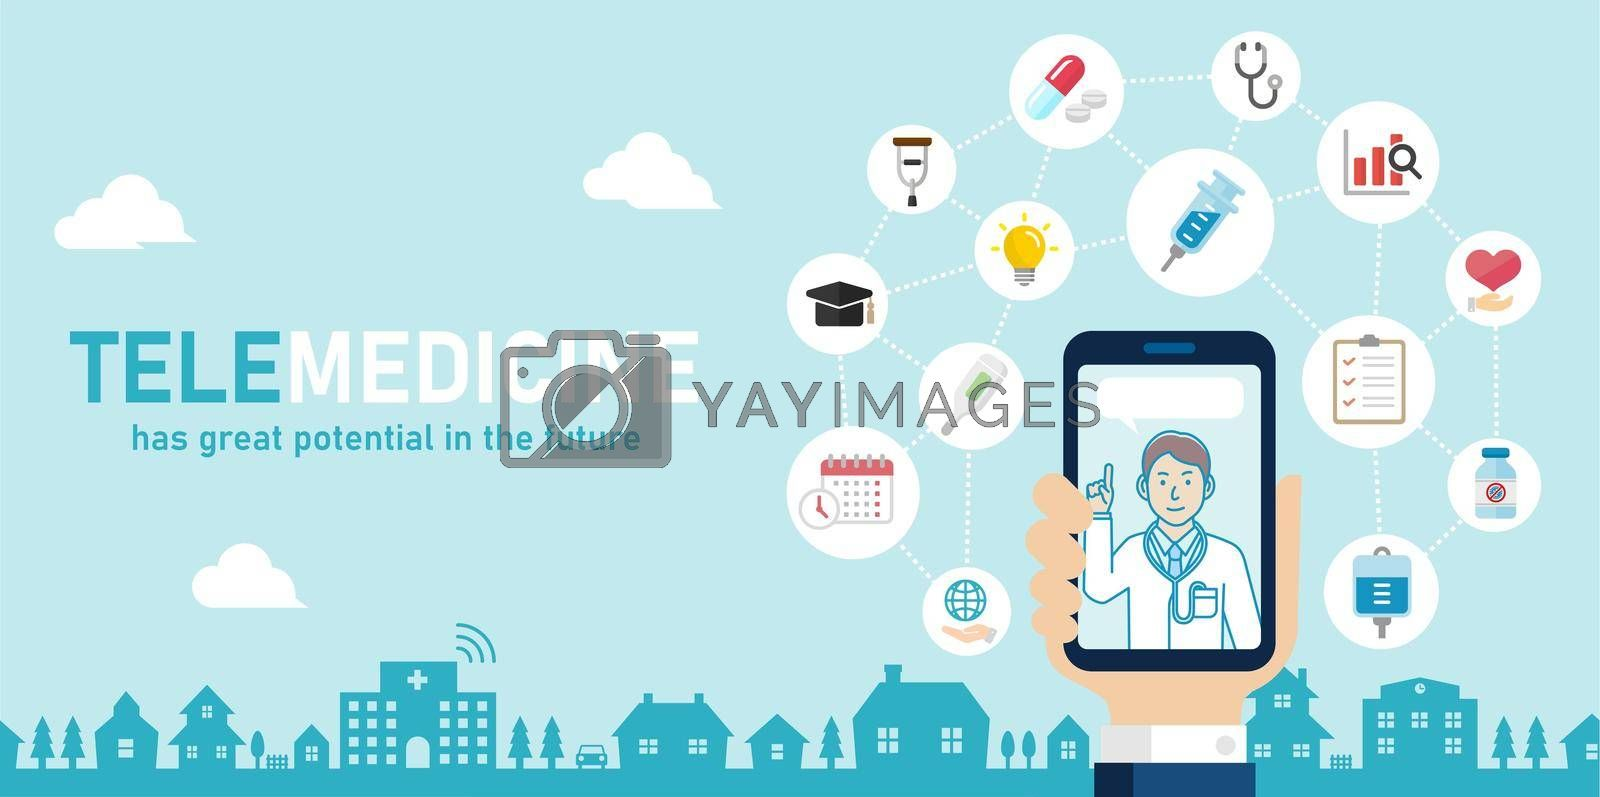 Royalty free image of Telemedicine,  telehealth concept banner illustration by barks